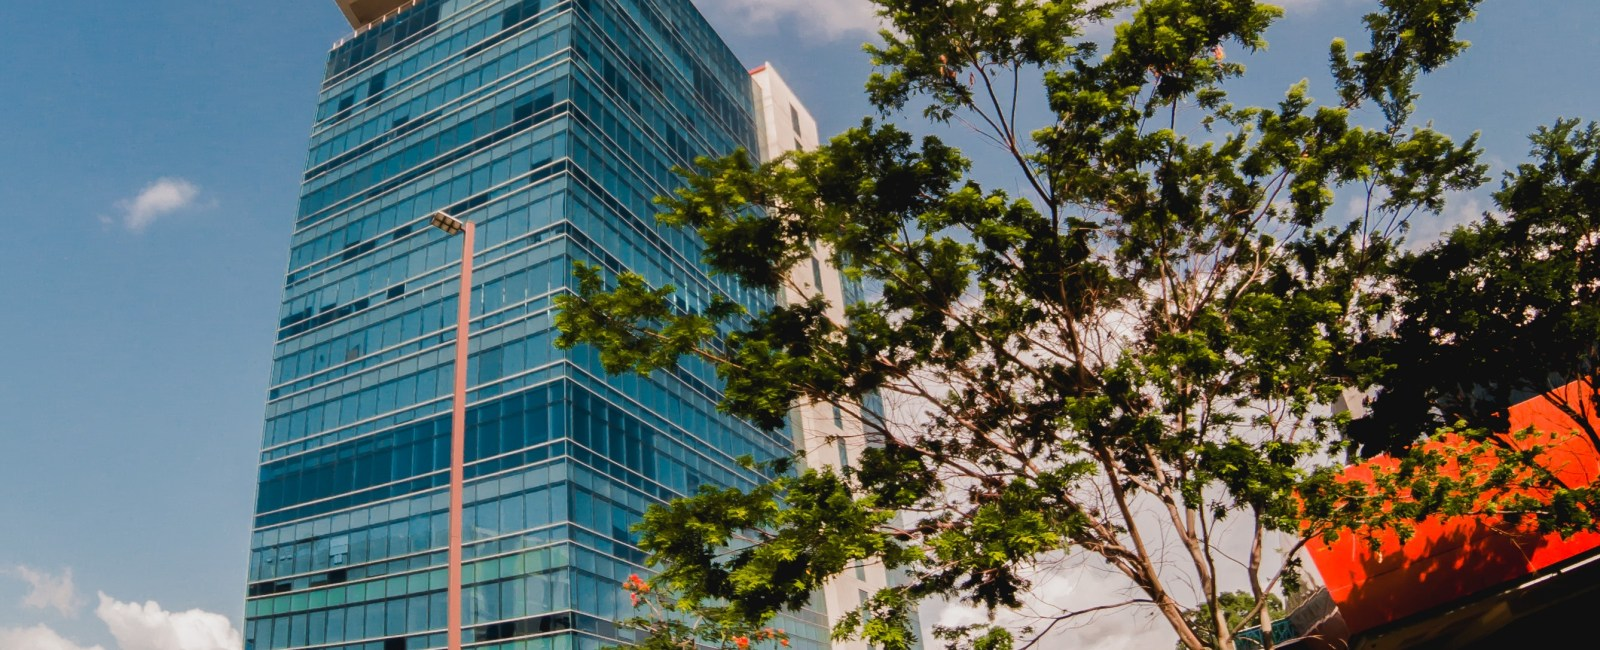 KM²'s San Pedro Sula, Honduras operation is located in the Altia Smart City business park.